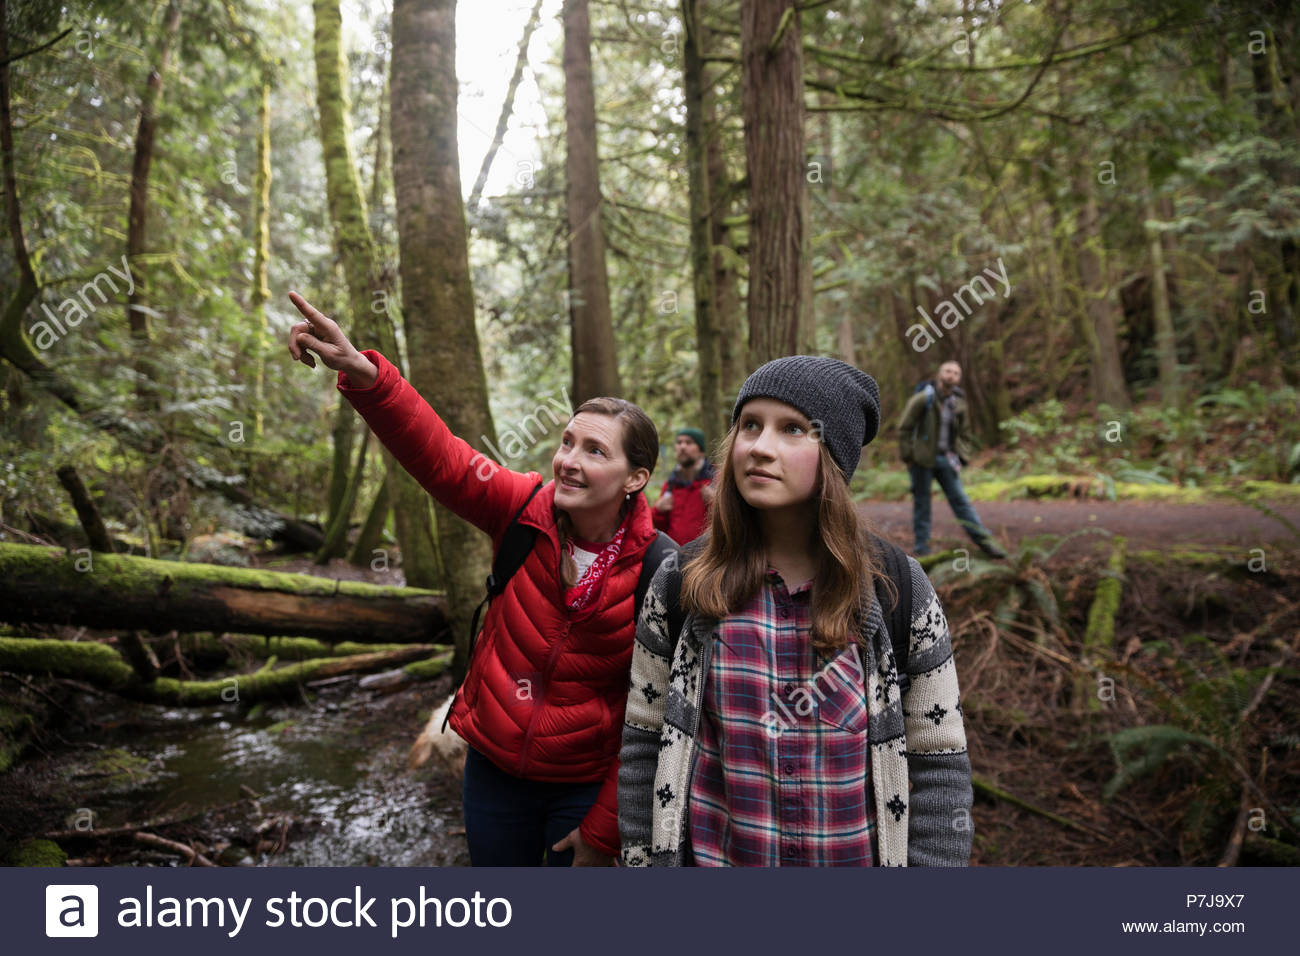 Mother and daughter hiking, exploring in woods Stock Photo